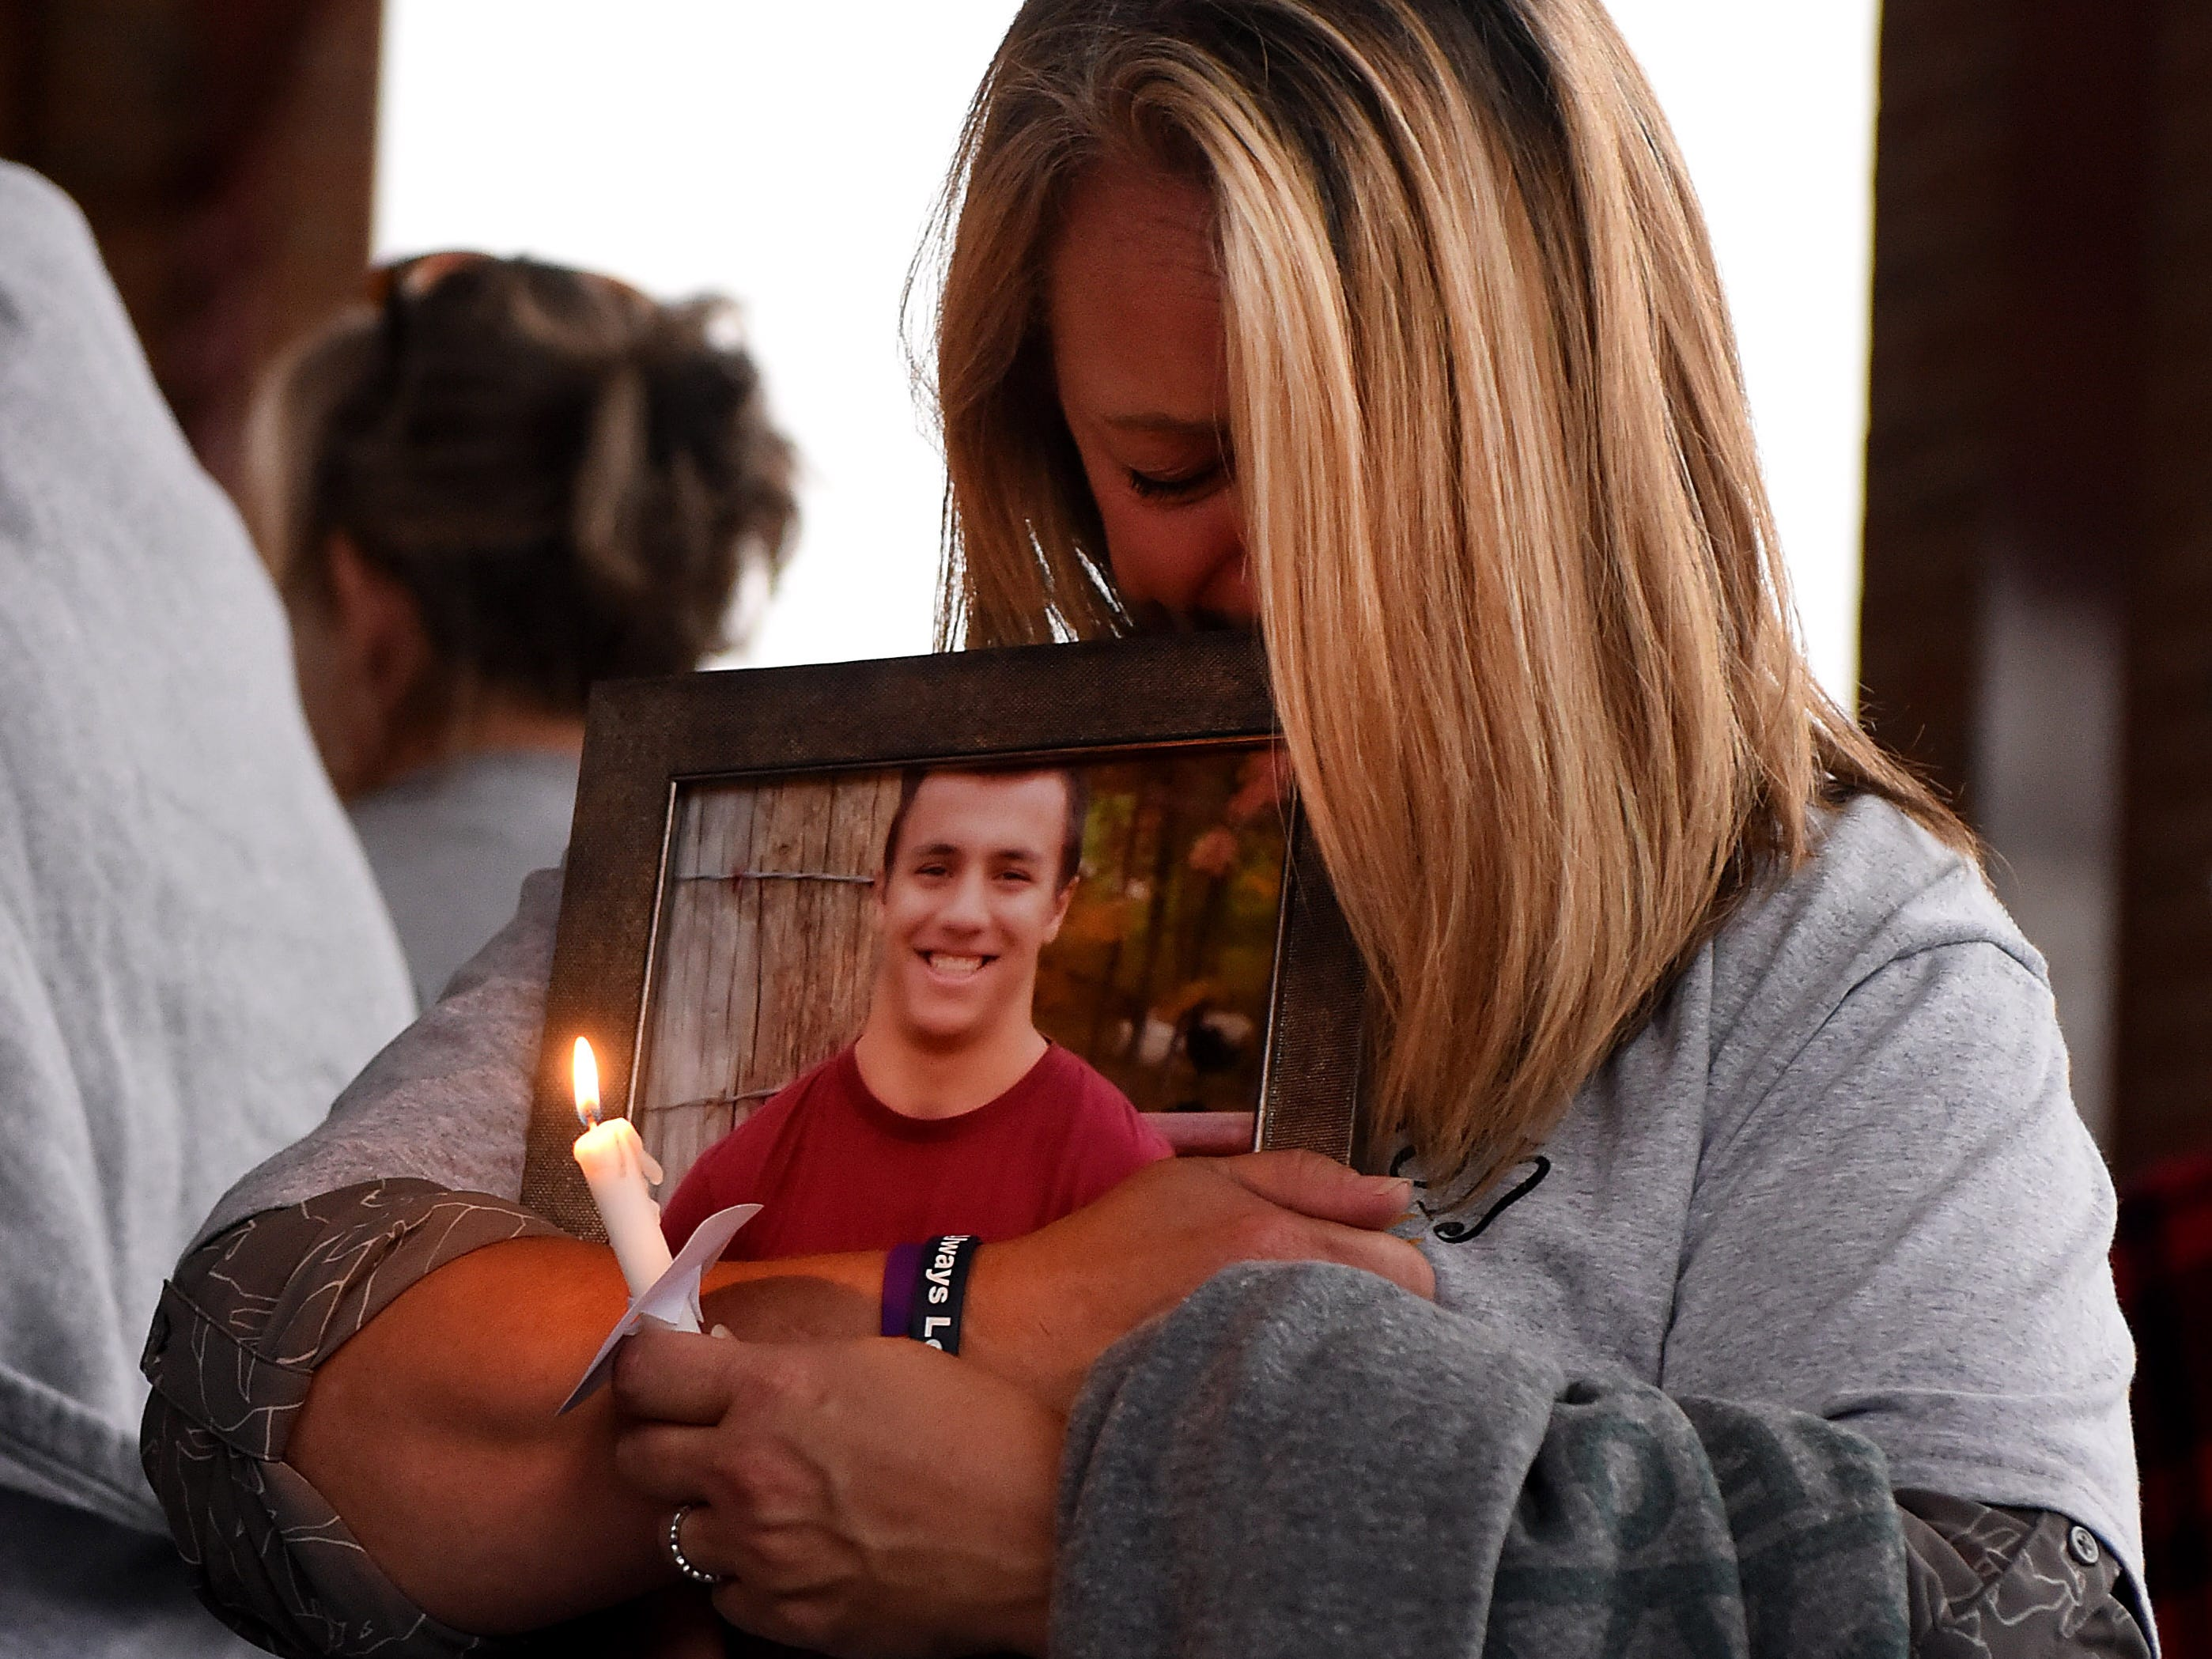 Kelly Wogan holds a photograph of her son, Tommy, during Mental Health America of Licking County's suicide prevention walk and candlelight vigil on Tuesday, Sept. 11, 2018 at the Canal Market District. Tommy, a Licking Valley graduate, died by suicide in January 2018. His parents came to the event to raise awareness and remember their son. The annual event is in recognition of September being Suicide Prevention Awareness month. The event is sponsored by MHA, Licking County Suicide Prevention Coalition, Survivors After Suicide Loss Support Group, and Mental Health & Recovery for Licking and Knox Counties. The Survivors After Suicide Loss Support Group meets at 6:30 p.m. the second Tuesday of every month at Mental Health America of Licking County, 65 Messimer Dr. in Newark.